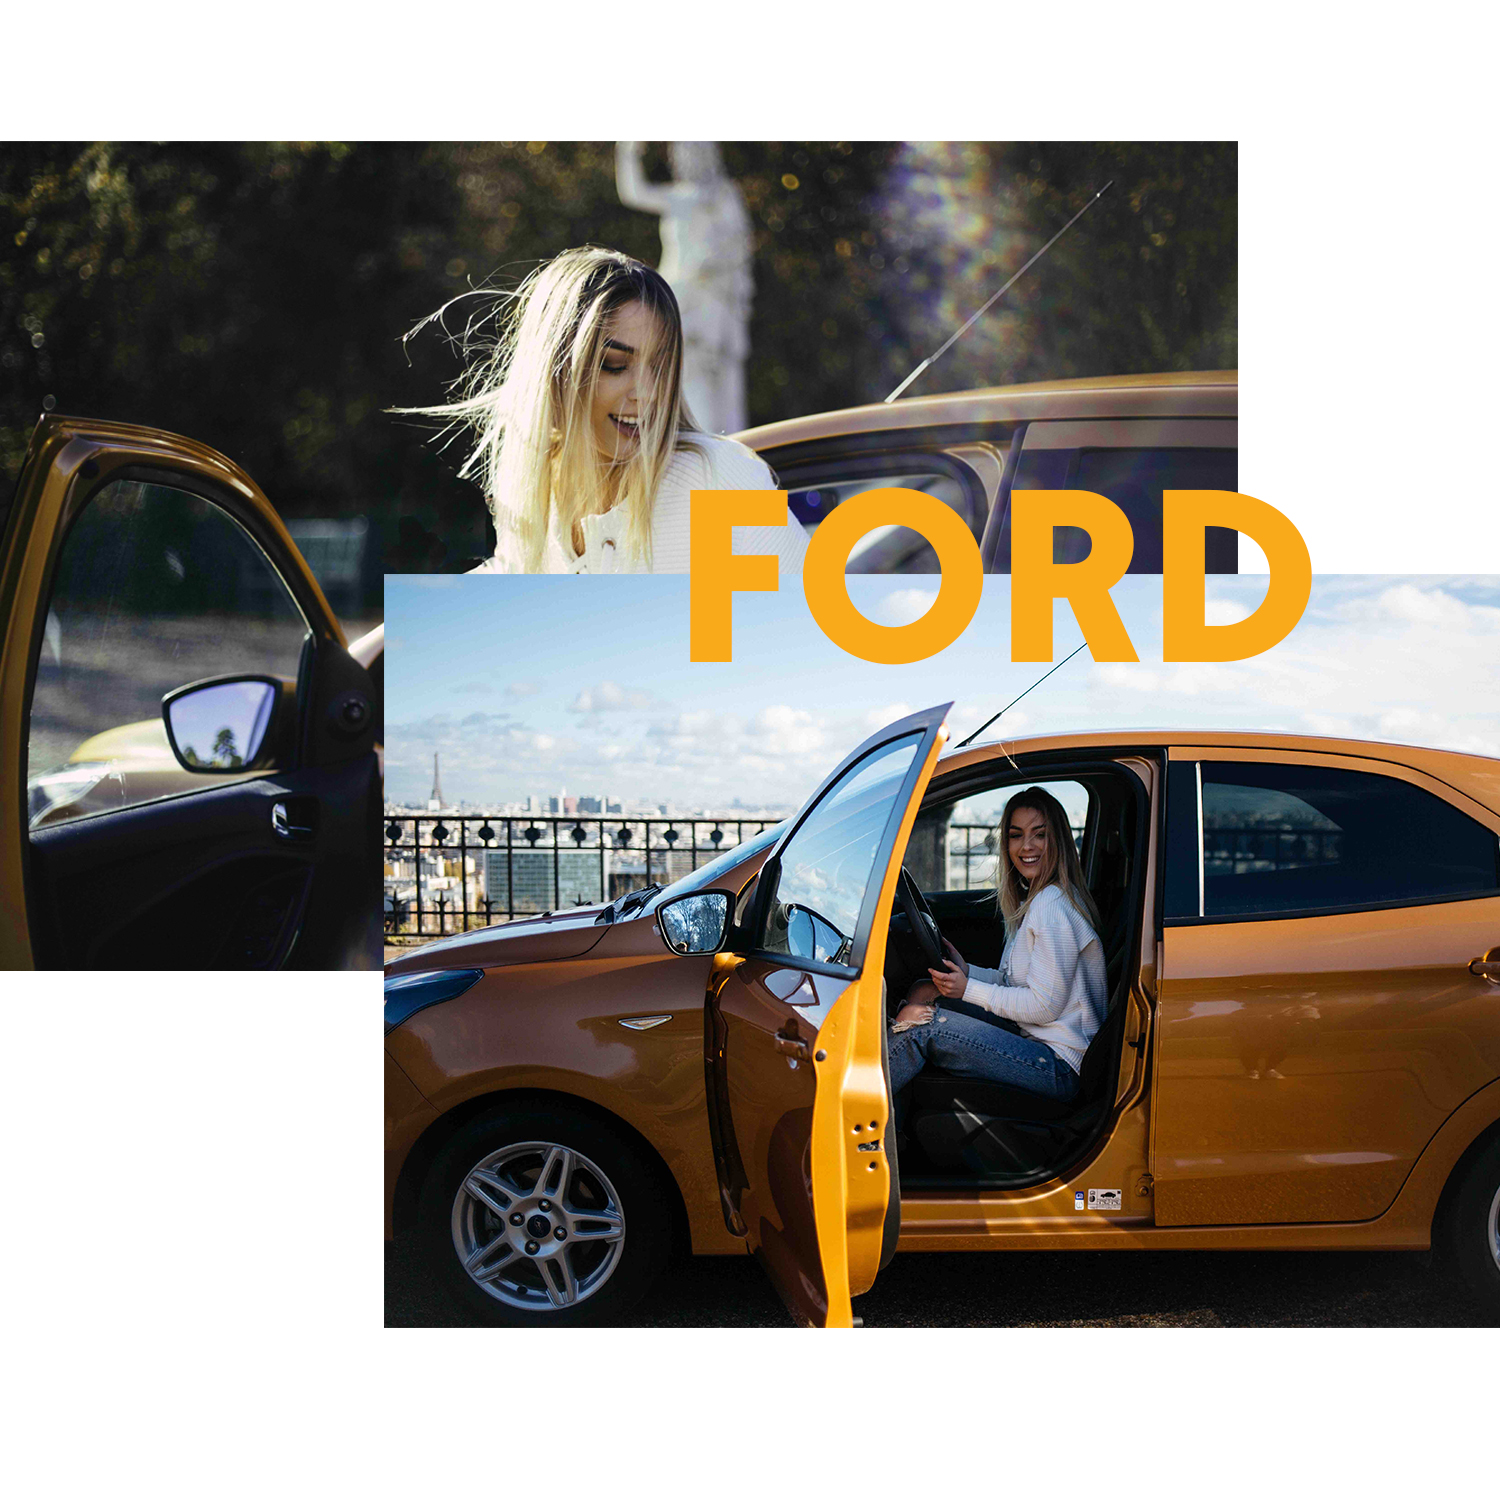 Ford blogueurs influence